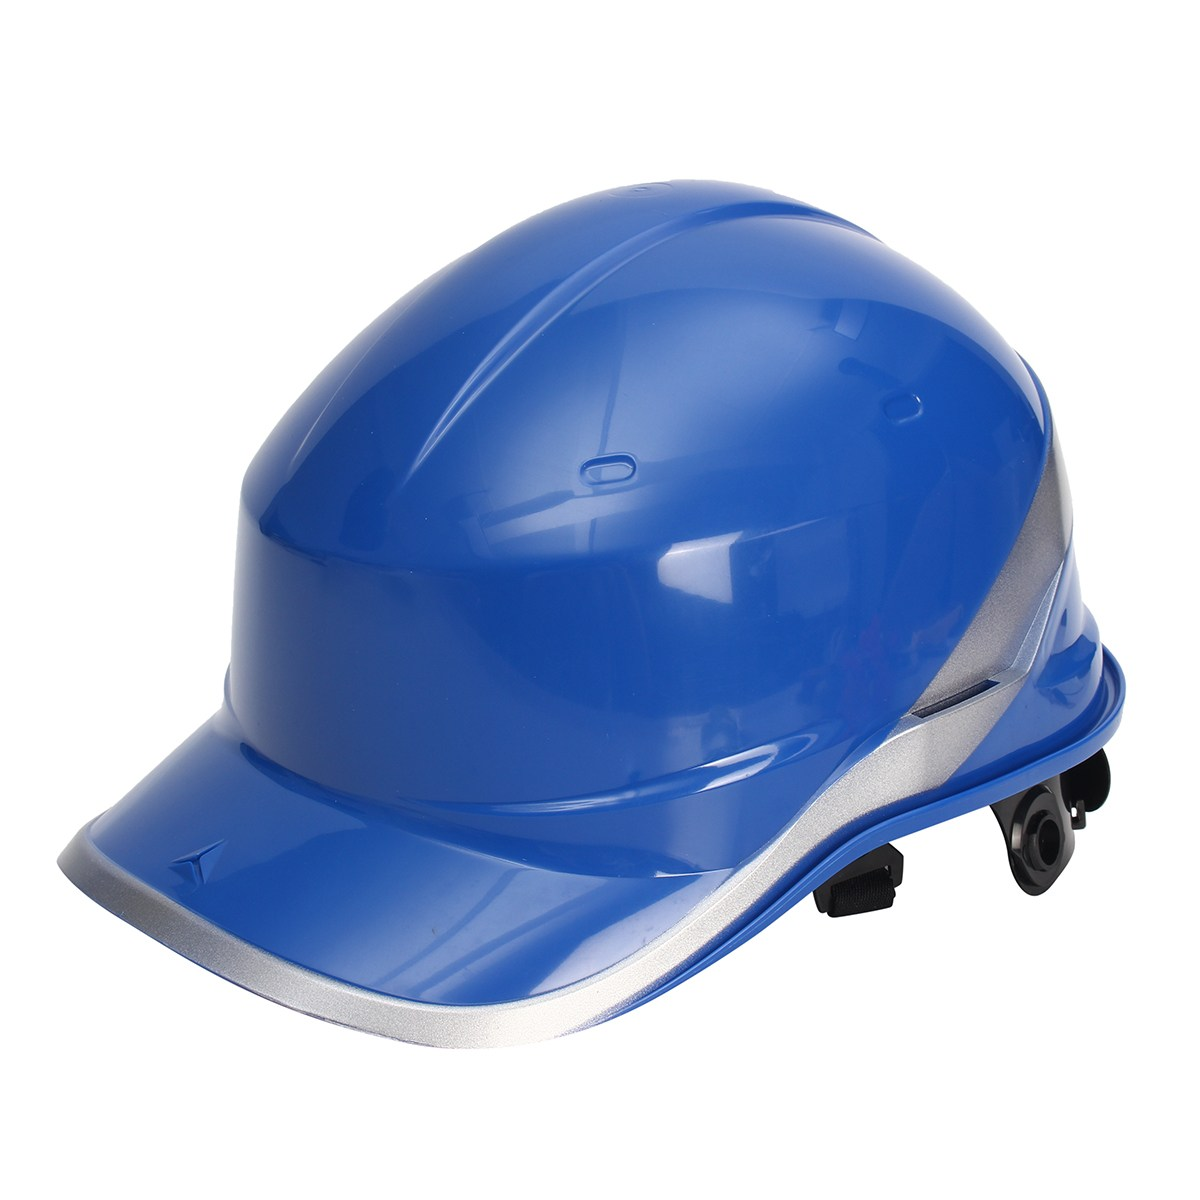 NEW Safety Hard Hats 8 Point  Construction Work Protective Helmets  ABS Insulation Material Protect Helmets 2017 new knight protection gxt flip up motorcycle helmet g902 undrape face motorbike helmets made of abs and anti fogging lens